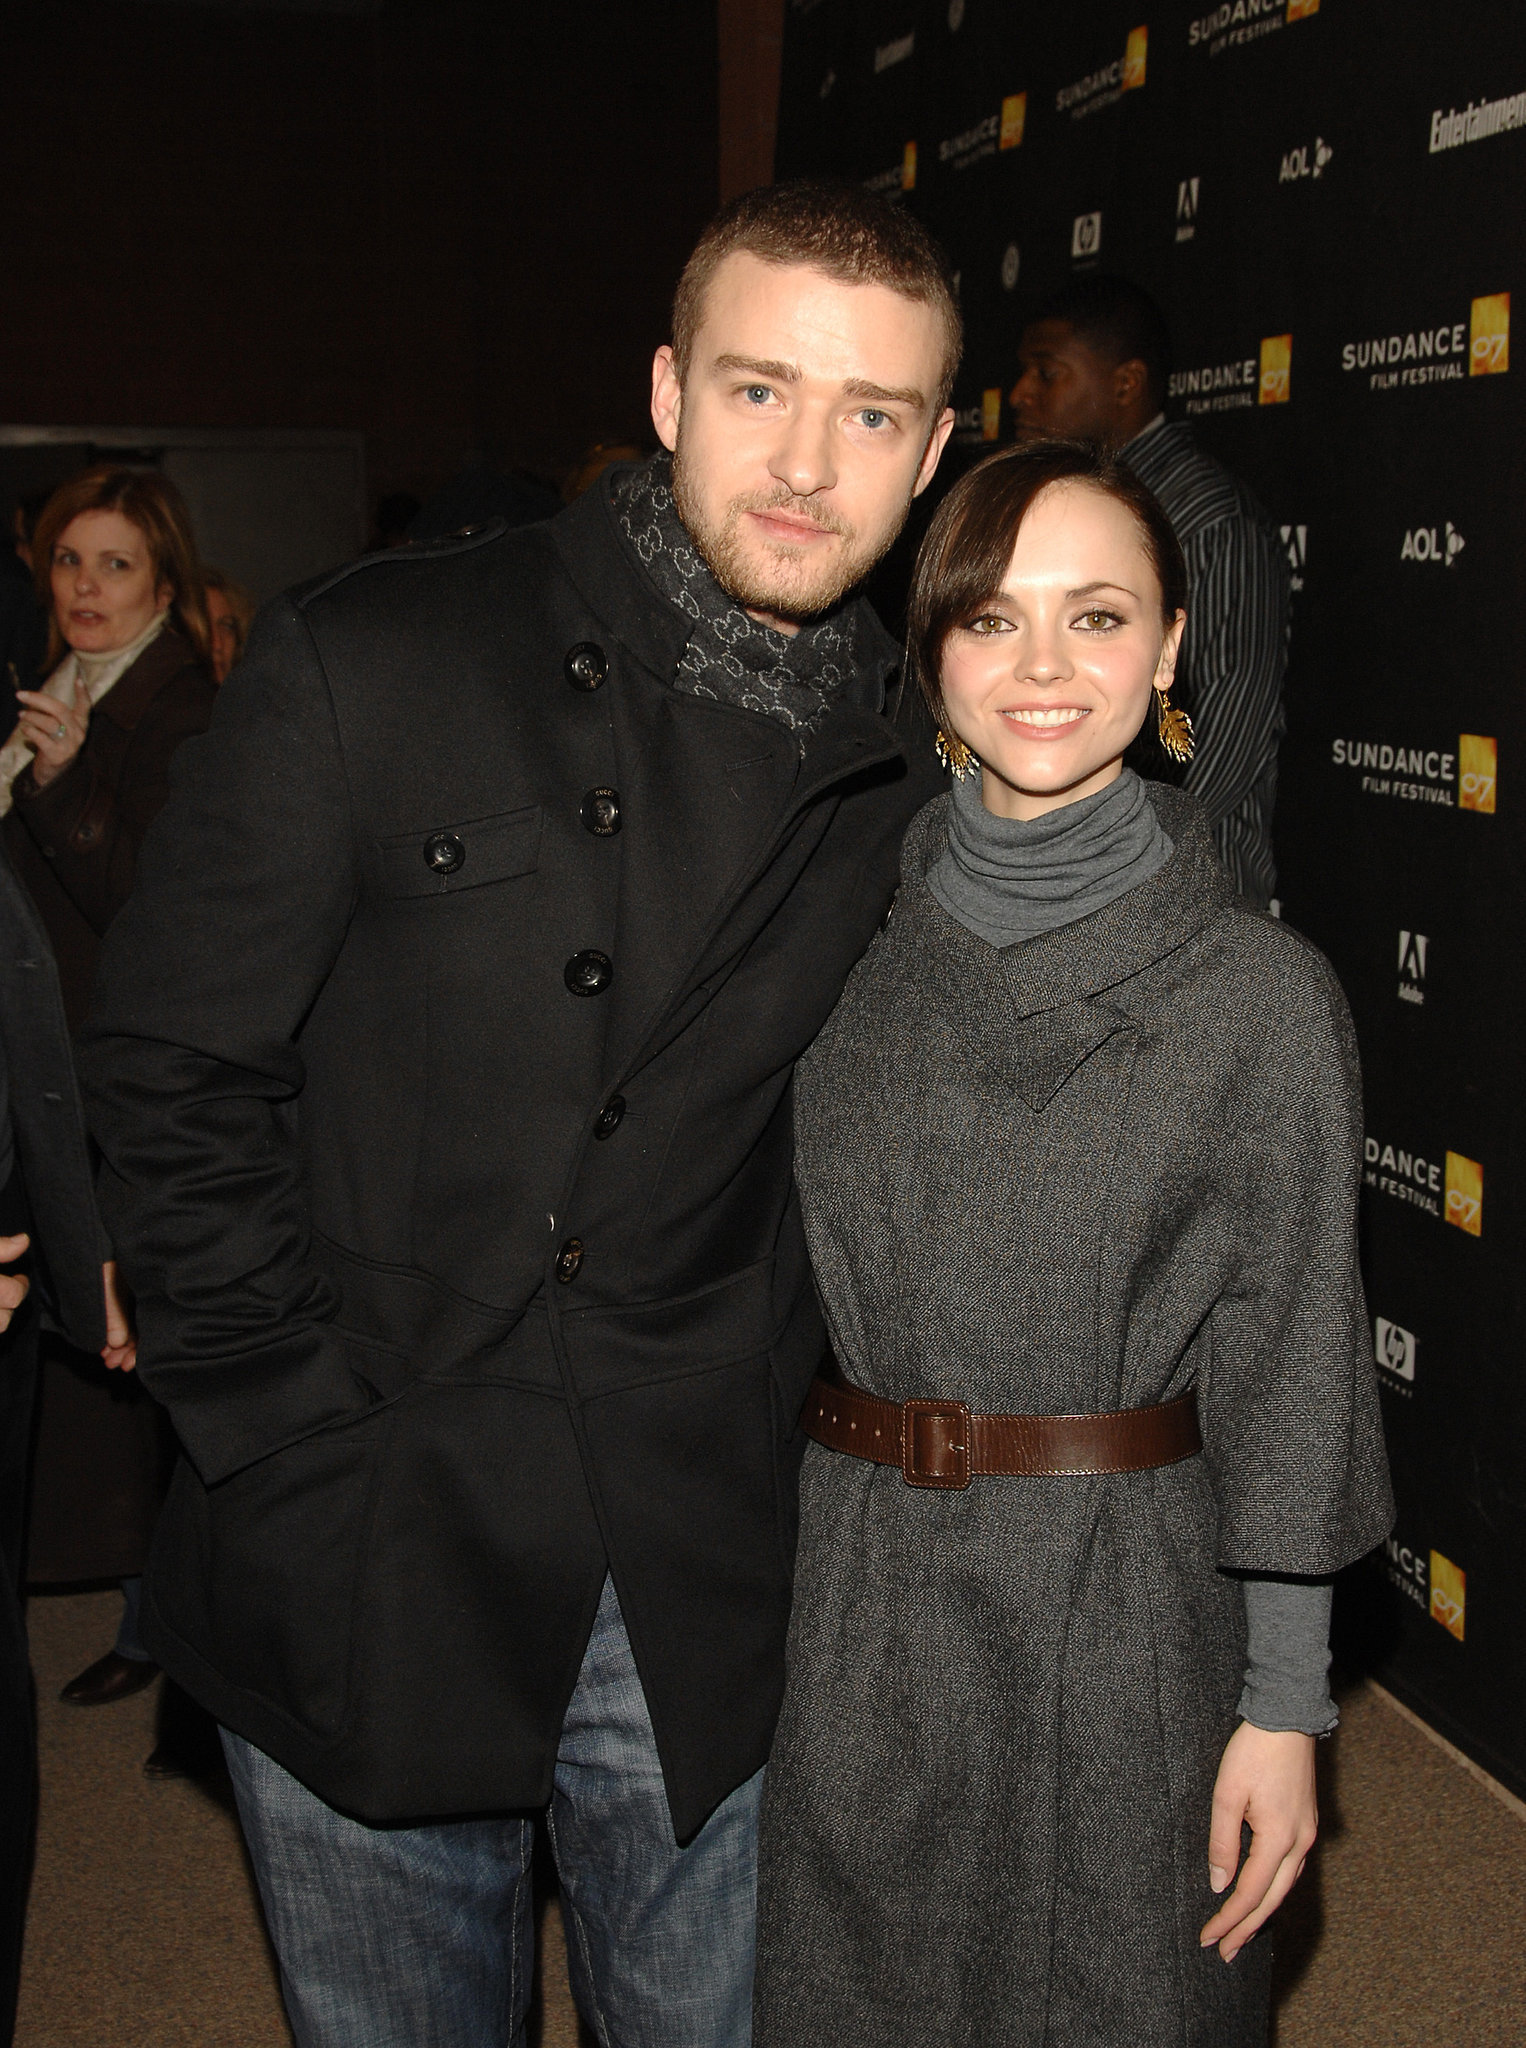 He and Christina Ricci teamed up at the 2007 Sundance Film Fes